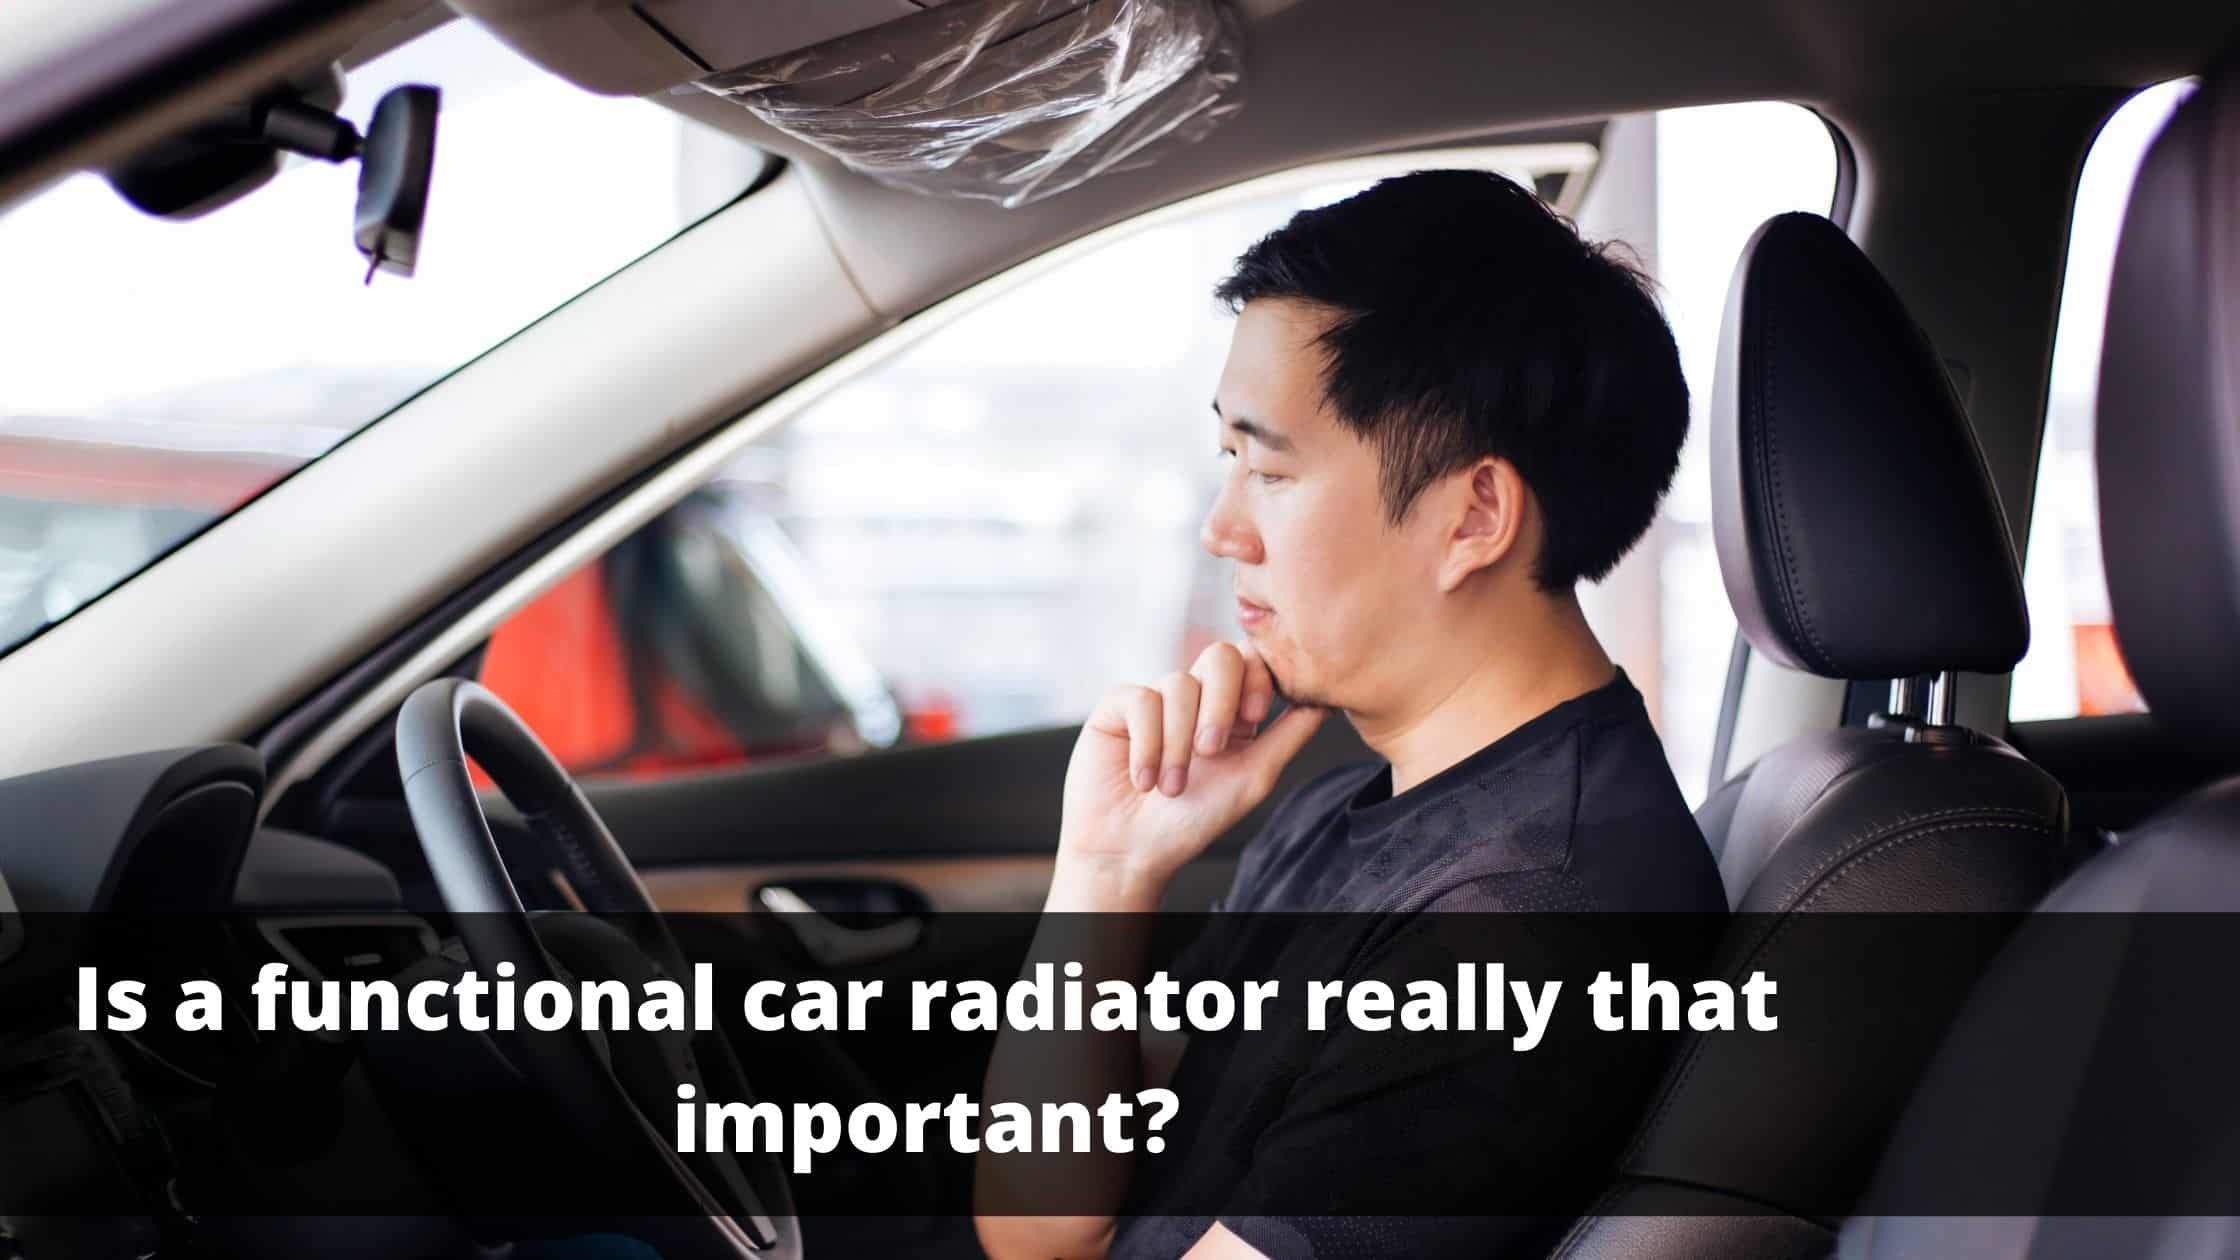 Why Do I Need a Well-Functioning Car Radiator?